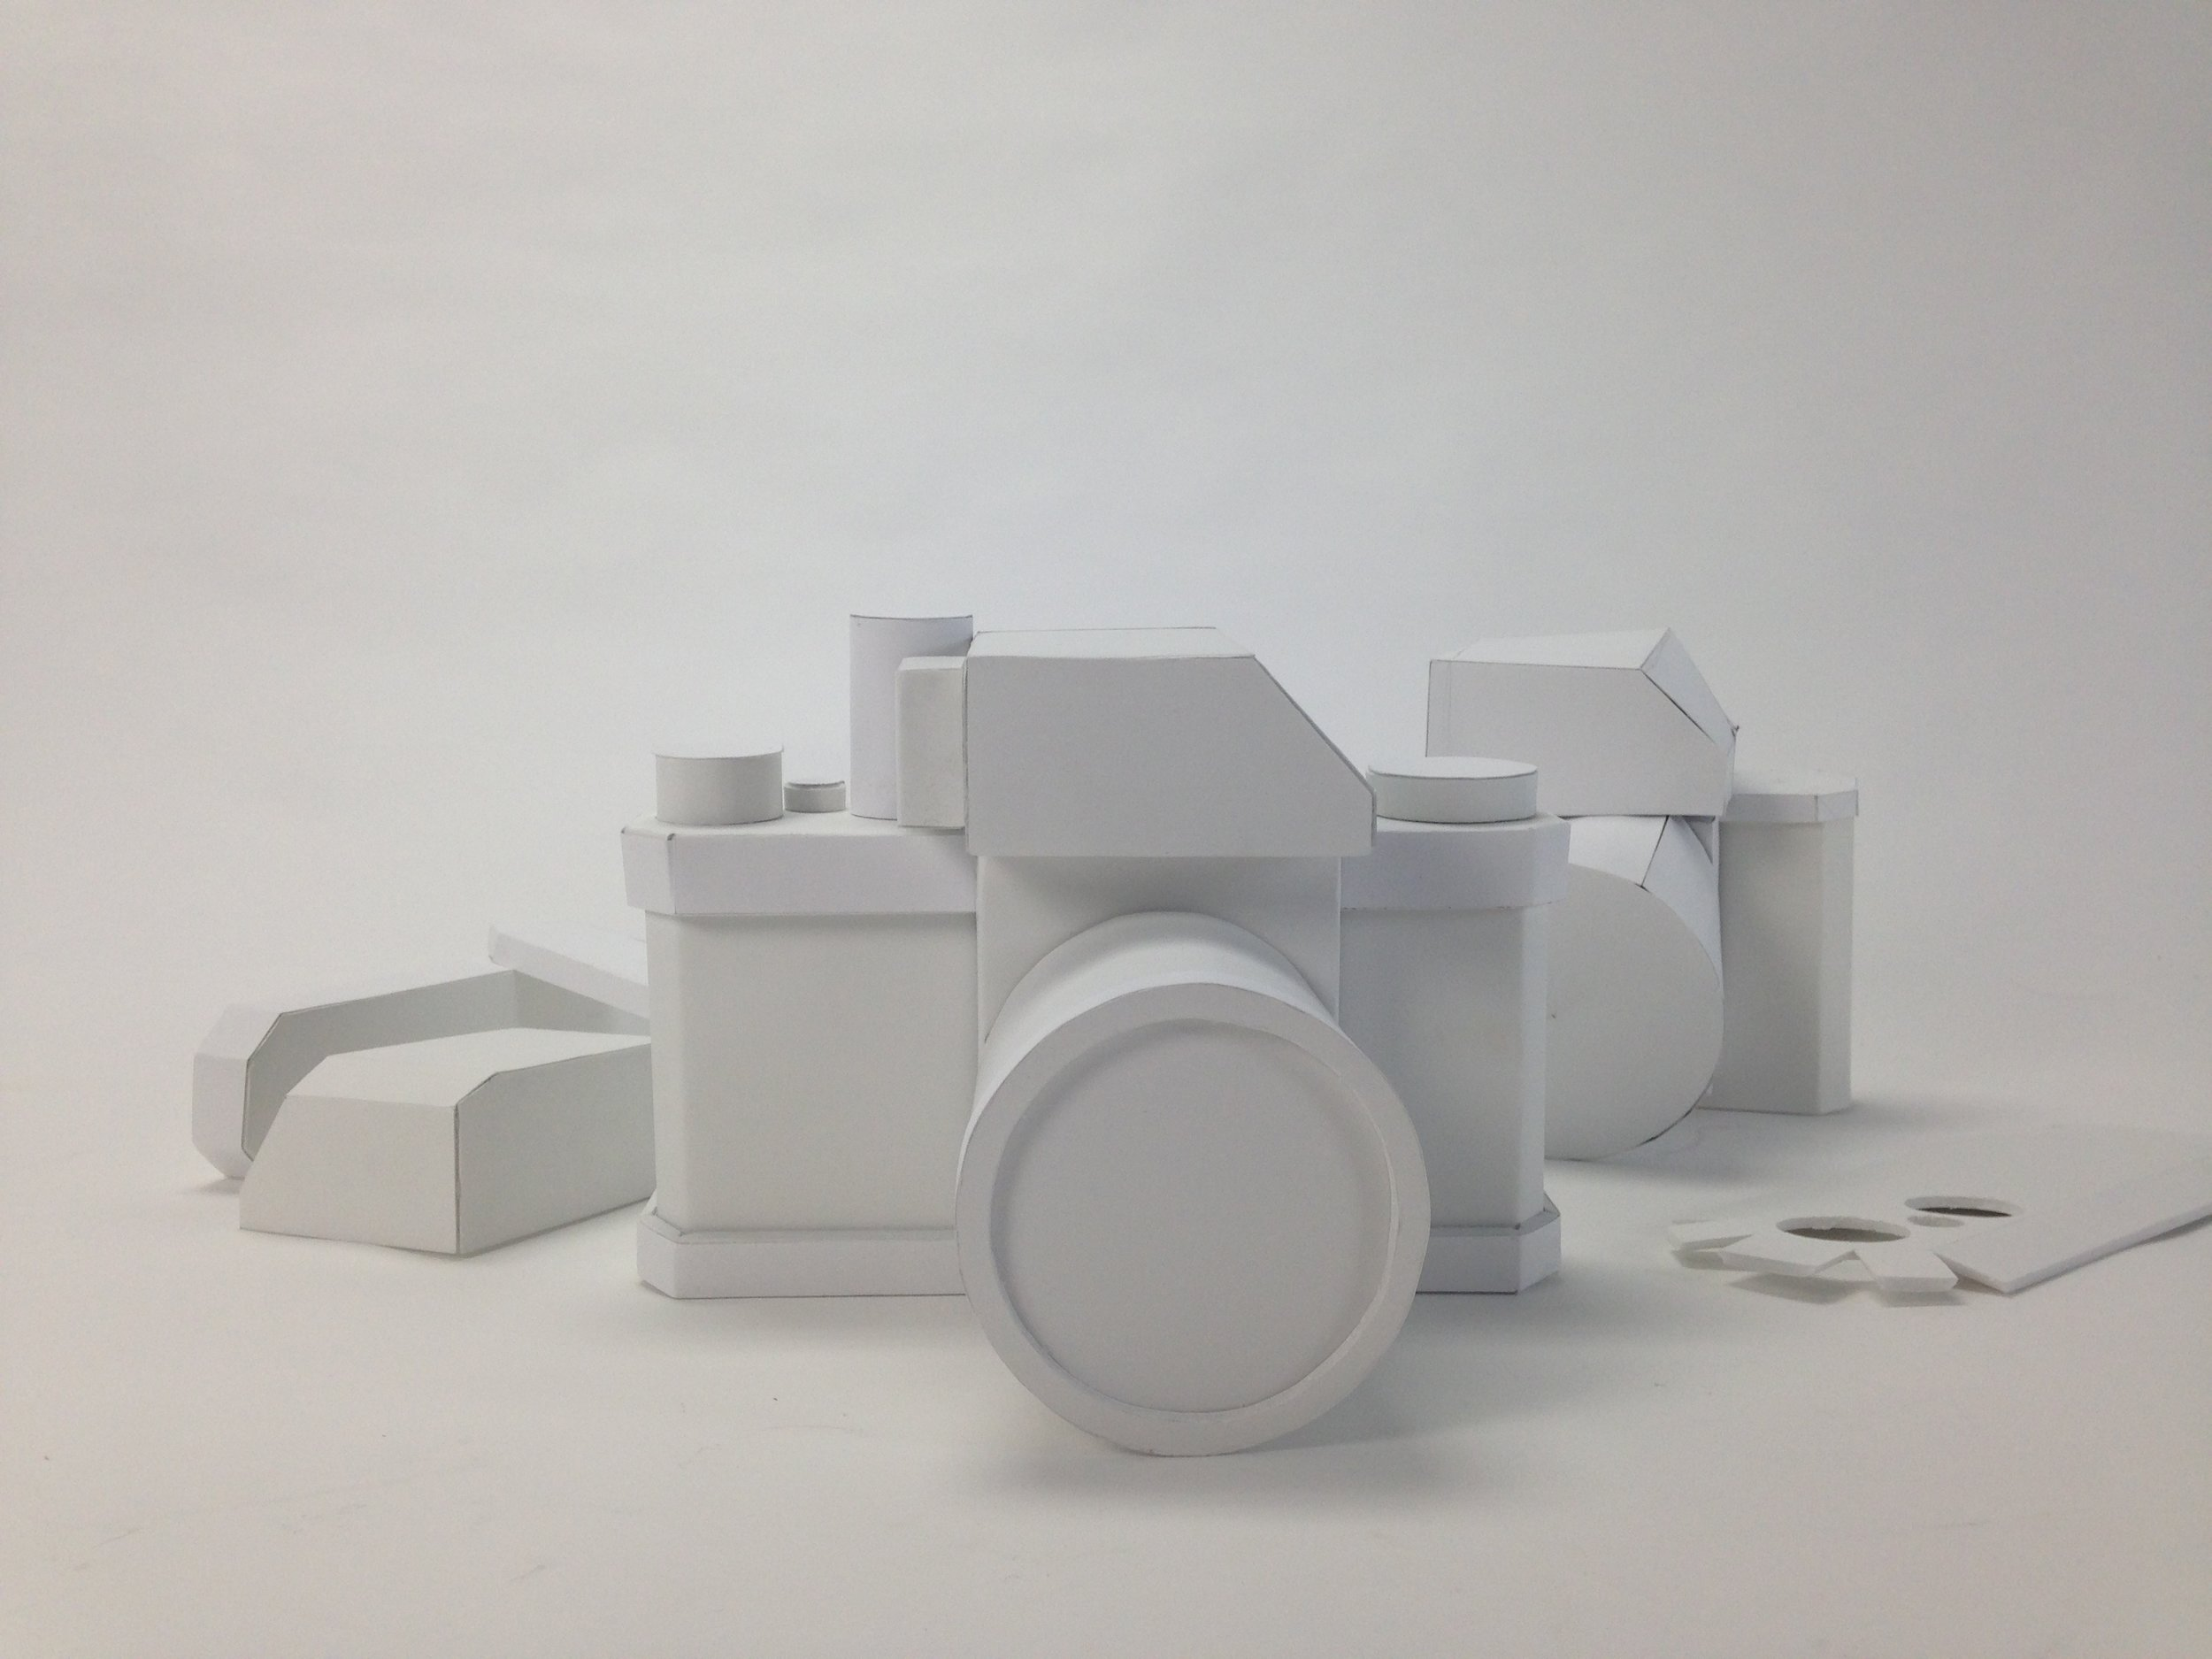 Model Making of a Camera /   foamcore